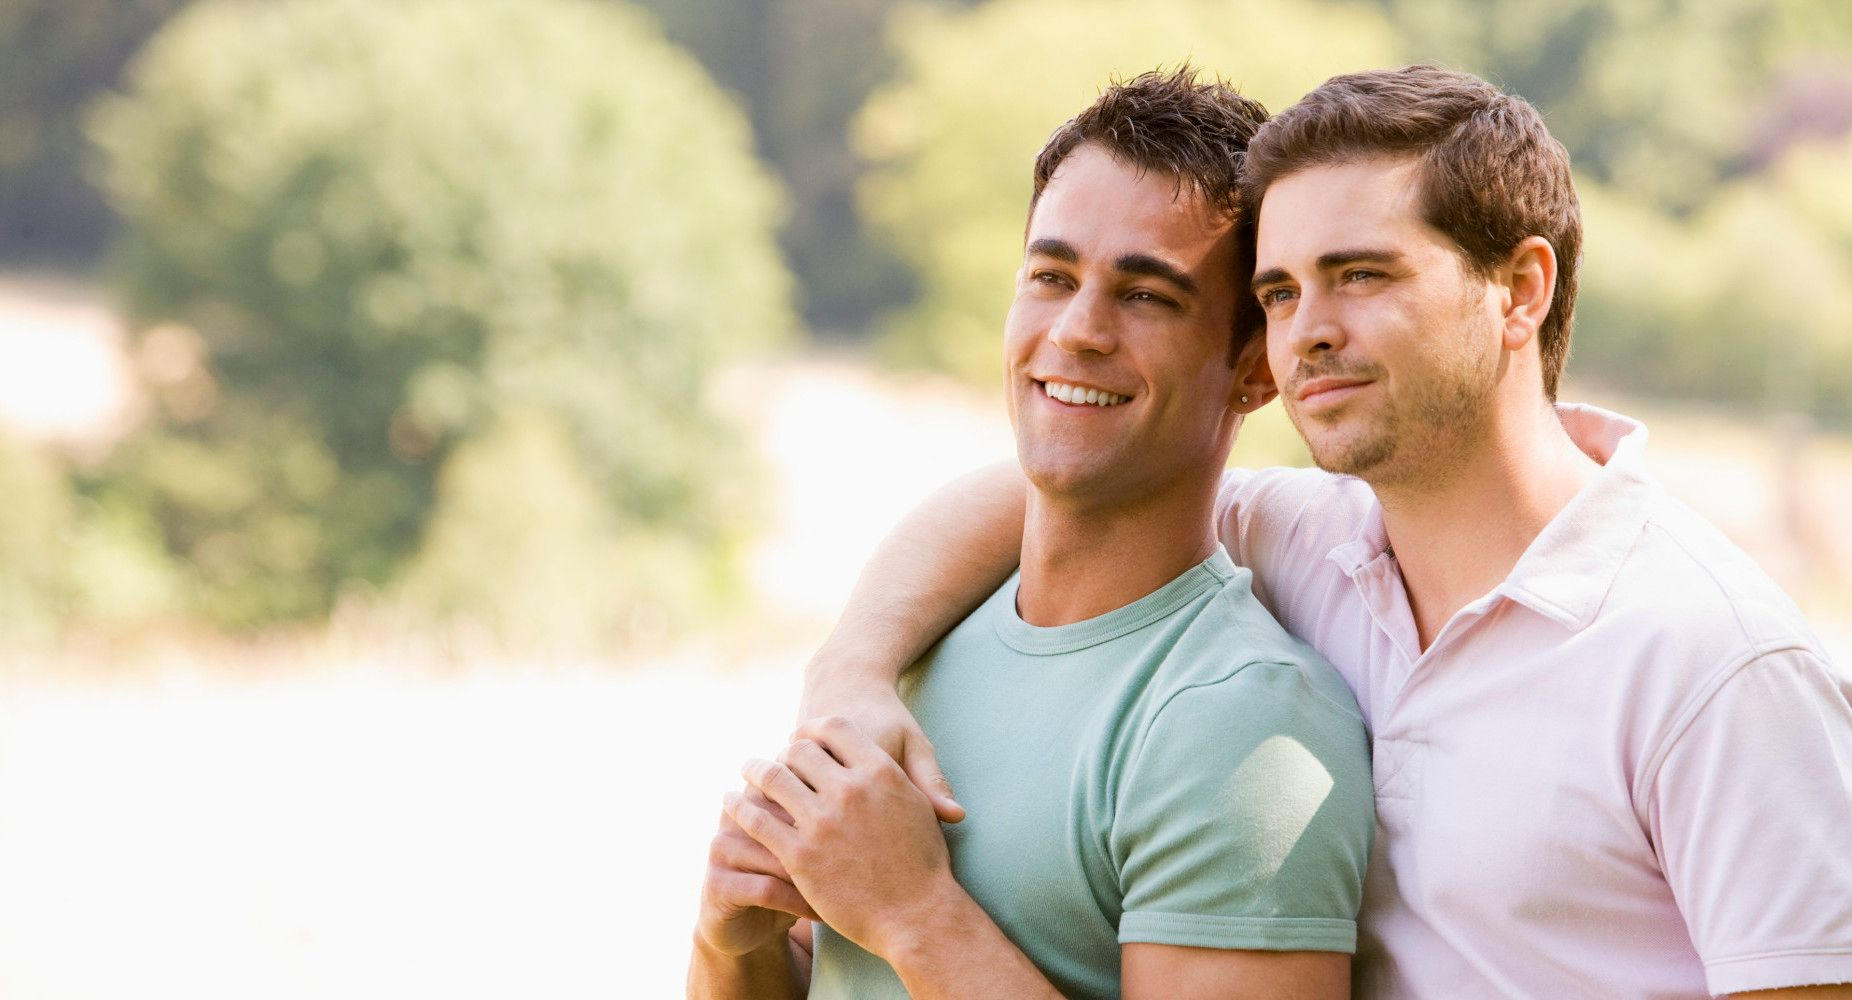 Dating advice for older gay men